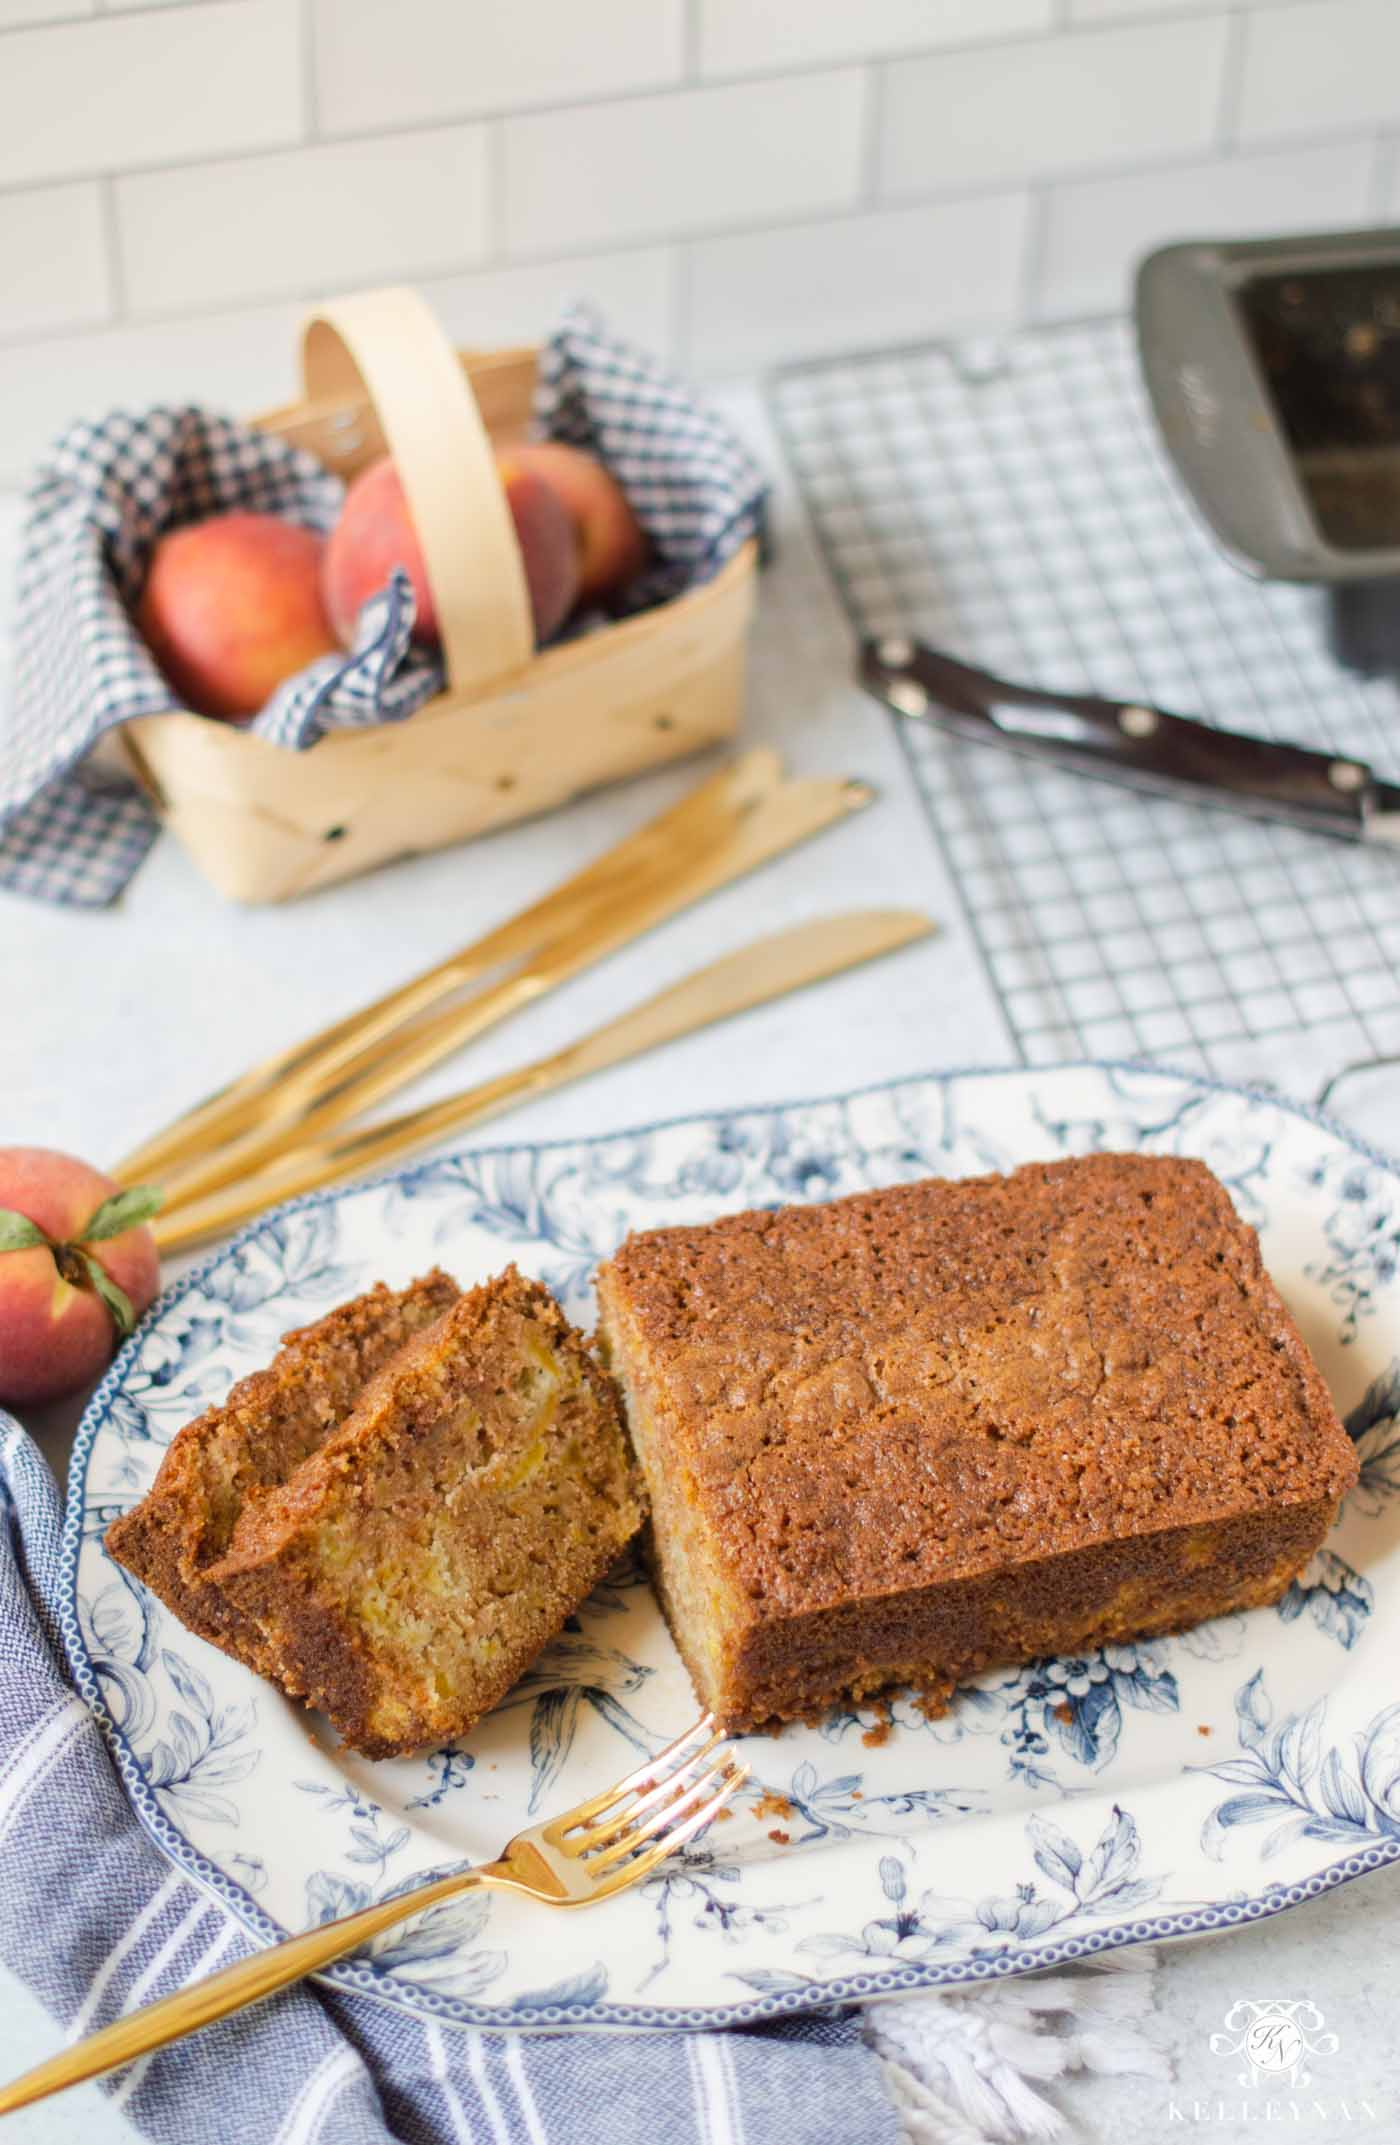 How to Make Delicious Peach Bread